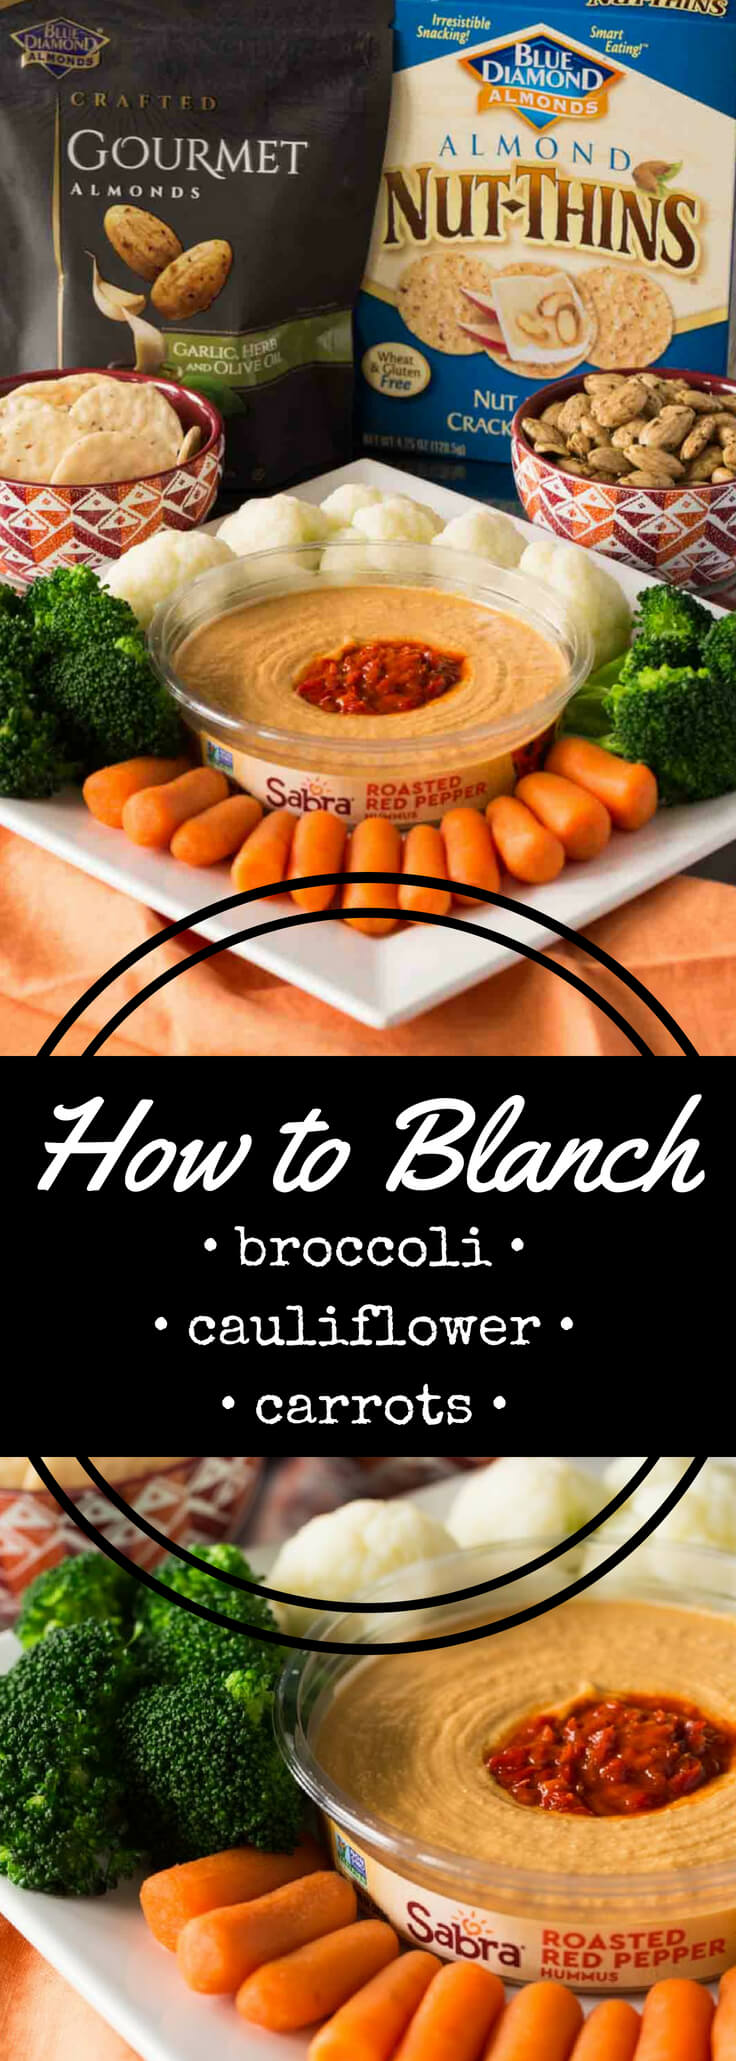 Learn how to blanch broccoli, cauliflower, and carrots for vegetable trays, crudités, and salad. Includes blanching, shocking, and serving instructions, plus vegetable tray ideas.